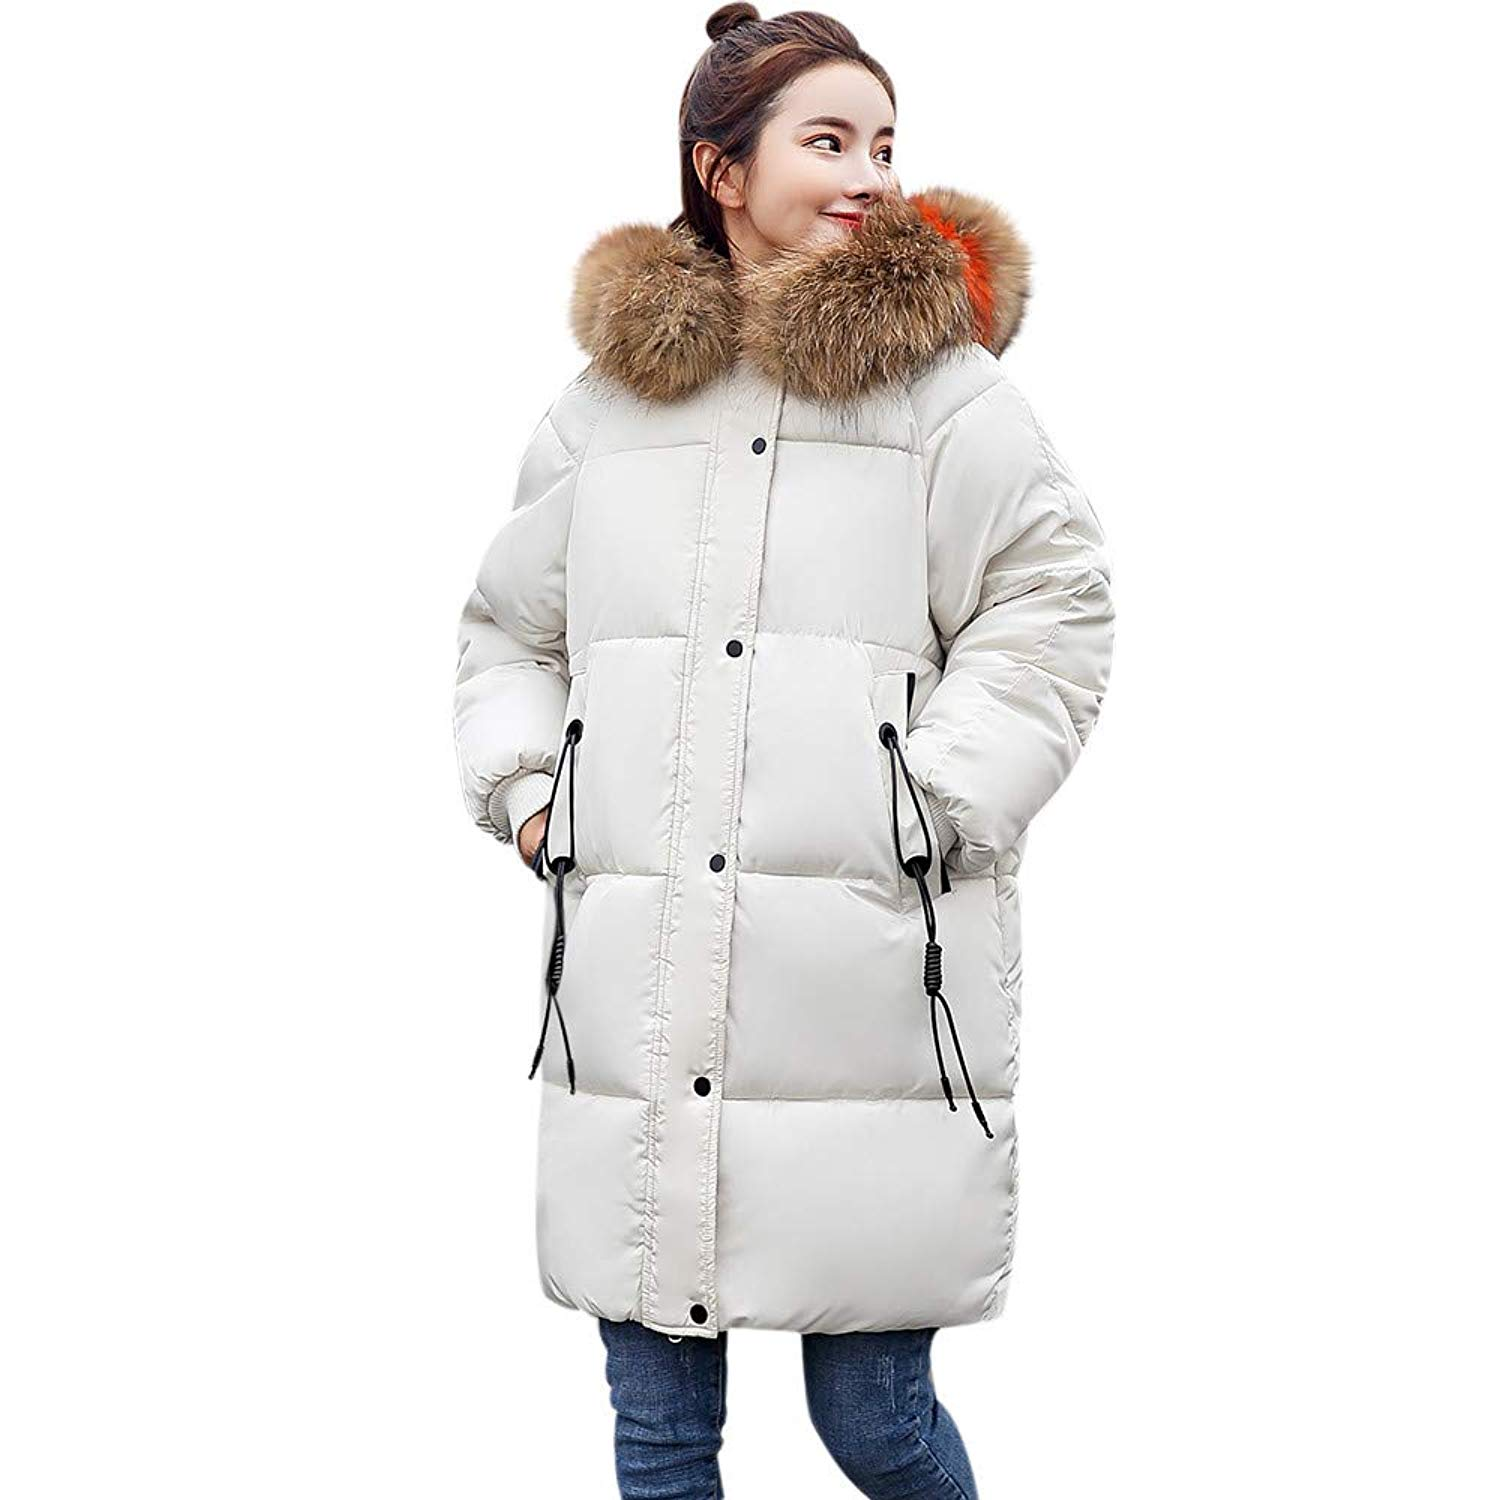 ZYooh Women Warm Thicker Winter Lammy Down Jackets Coat Slim Faux Fox Fur Hoodies Overcoat Lightweight Down Parka